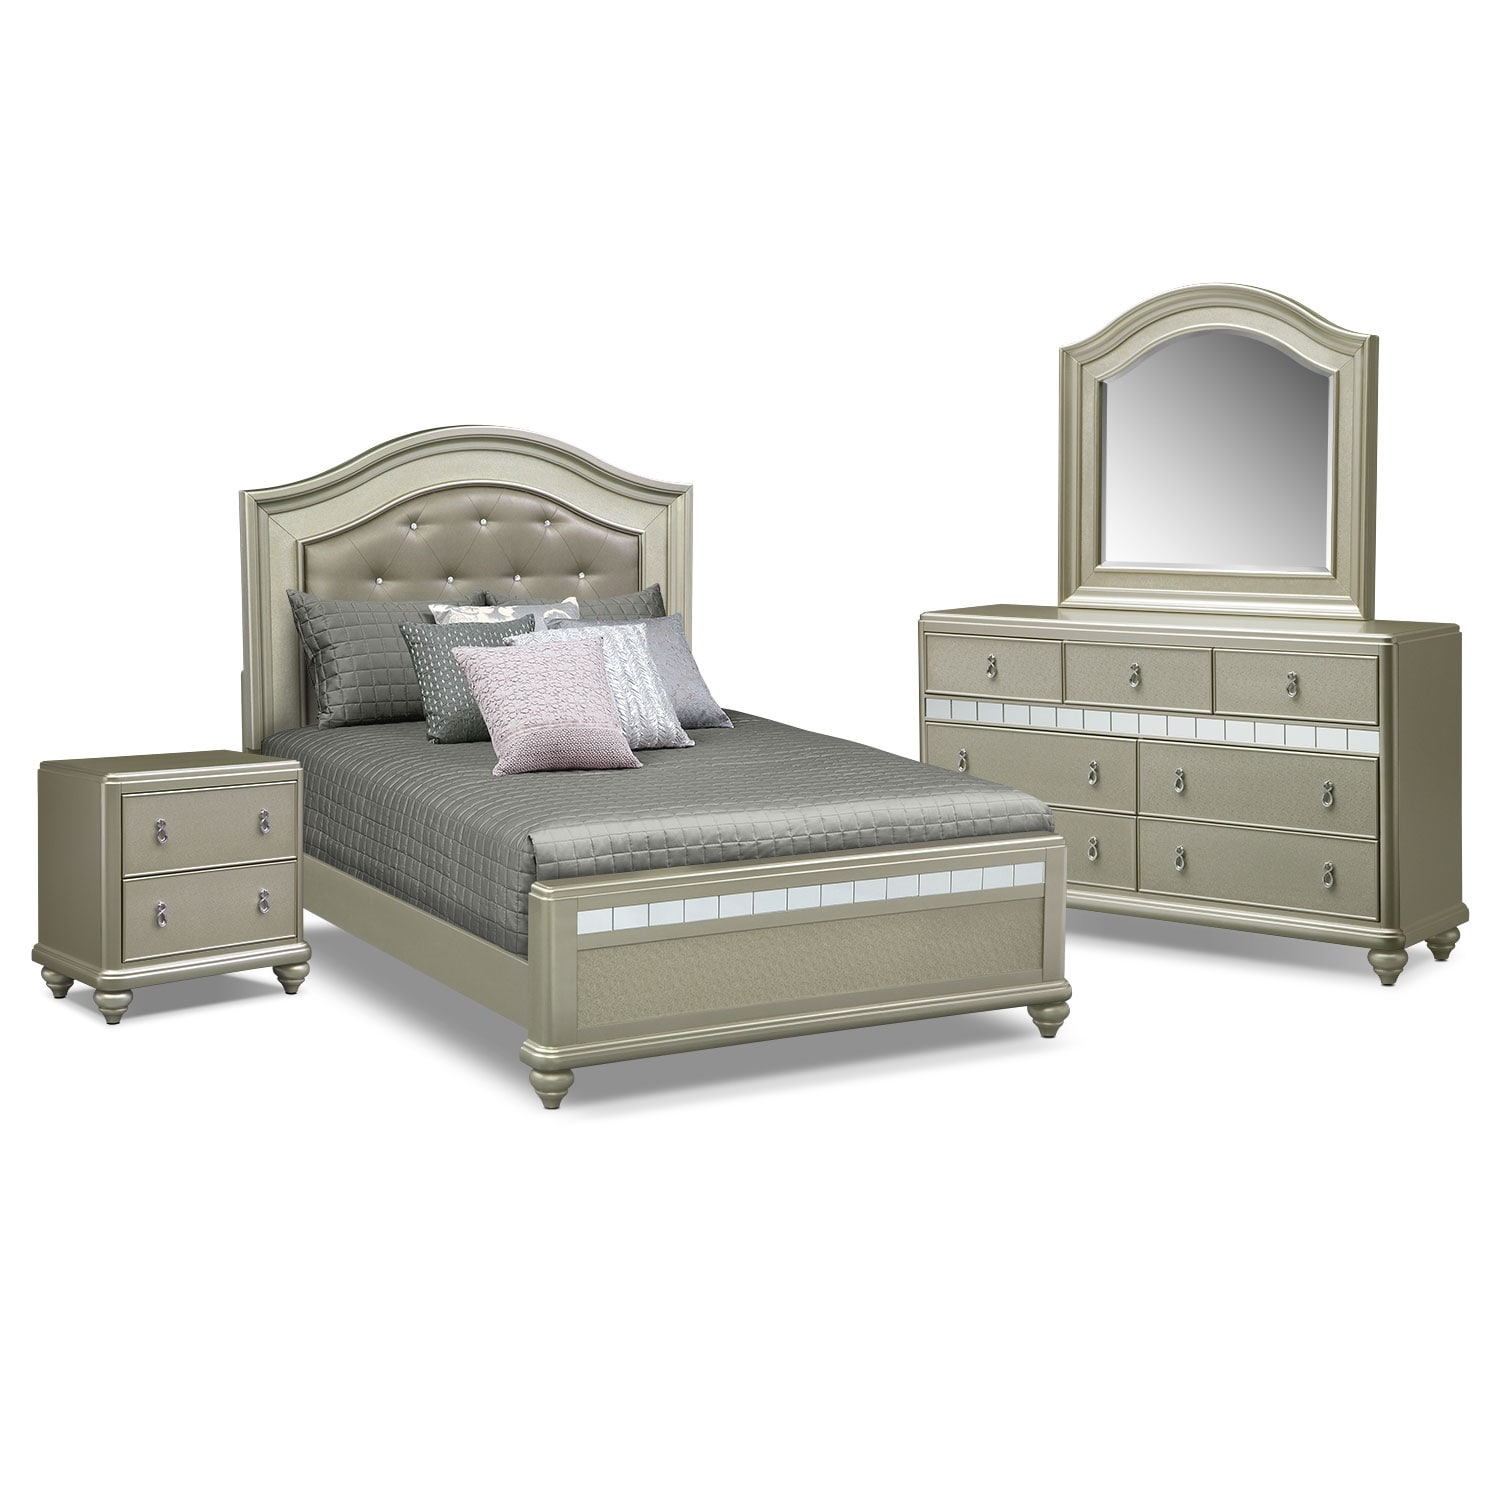 Serena queen 6 piece bedroom set platinum american for Bedroom 6 piece set